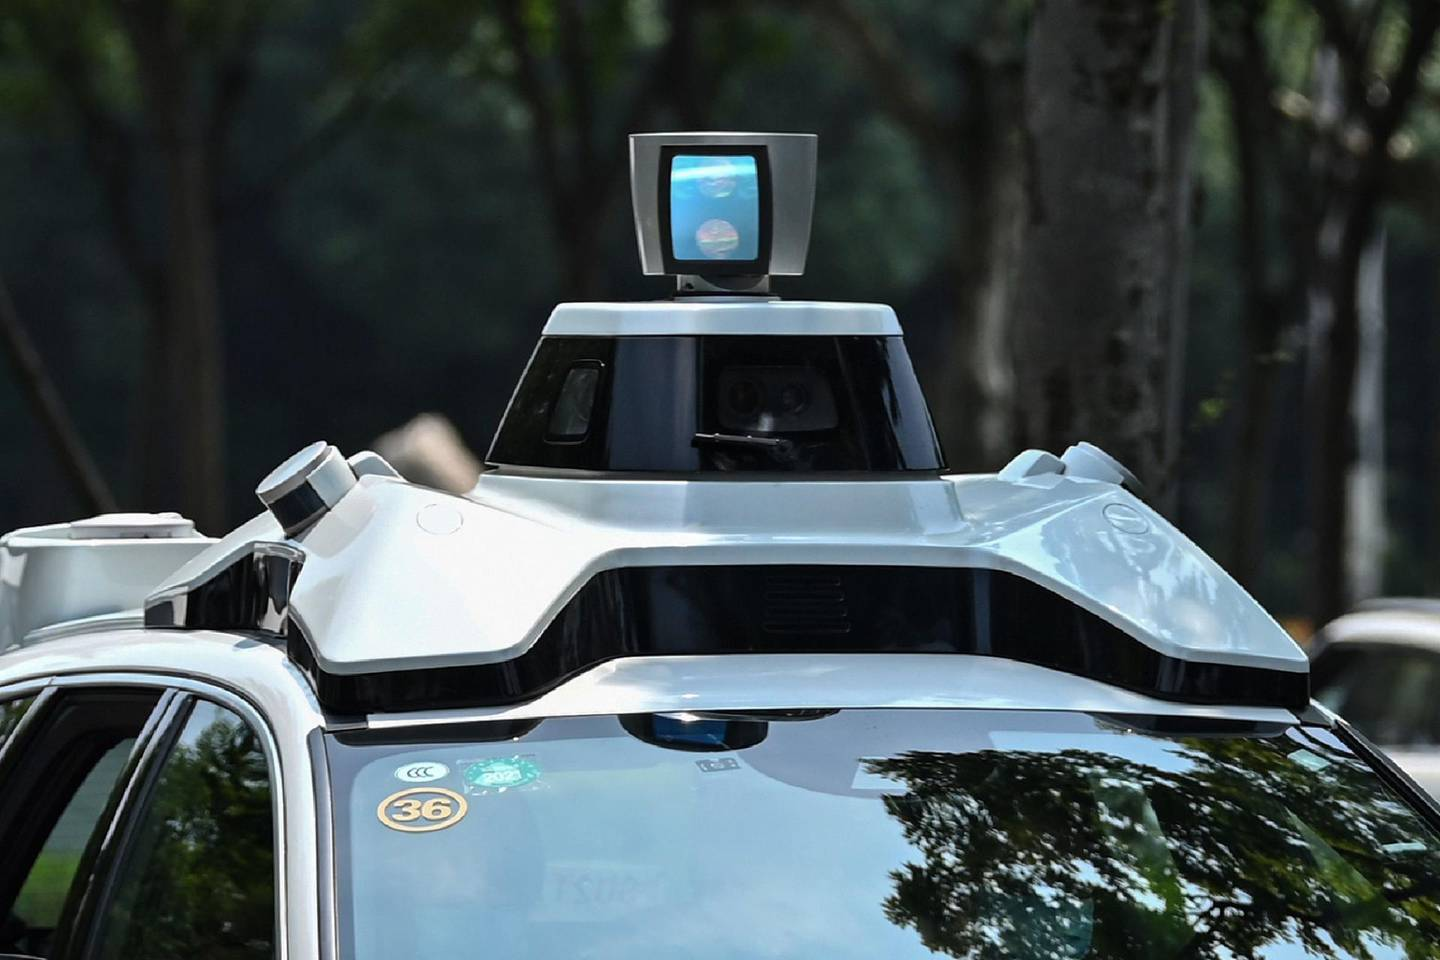 """This photo taken on July 22, 2020 shows a Didi Chuxing autonomous taxi during a pilot test drive on the streets in Shanghai. Chinese entrants in the race to put autonomous vehicles on the road are bringing """"robotaxis"""" online in hopes that a hired-car format can be the key to unlocking wide acceptance of the futuristic technology. - TO GO WITH AFP STORY IT-China-automobile-autonomous-computers,FOCUS by Beiyi Seow and Dan Martin  / AFP / Hector RETAMAL / TO GO WITH AFP STORY IT-China-automobile-autonomous-computers,FOCUS by Beiyi Seow and Dan Martin"""